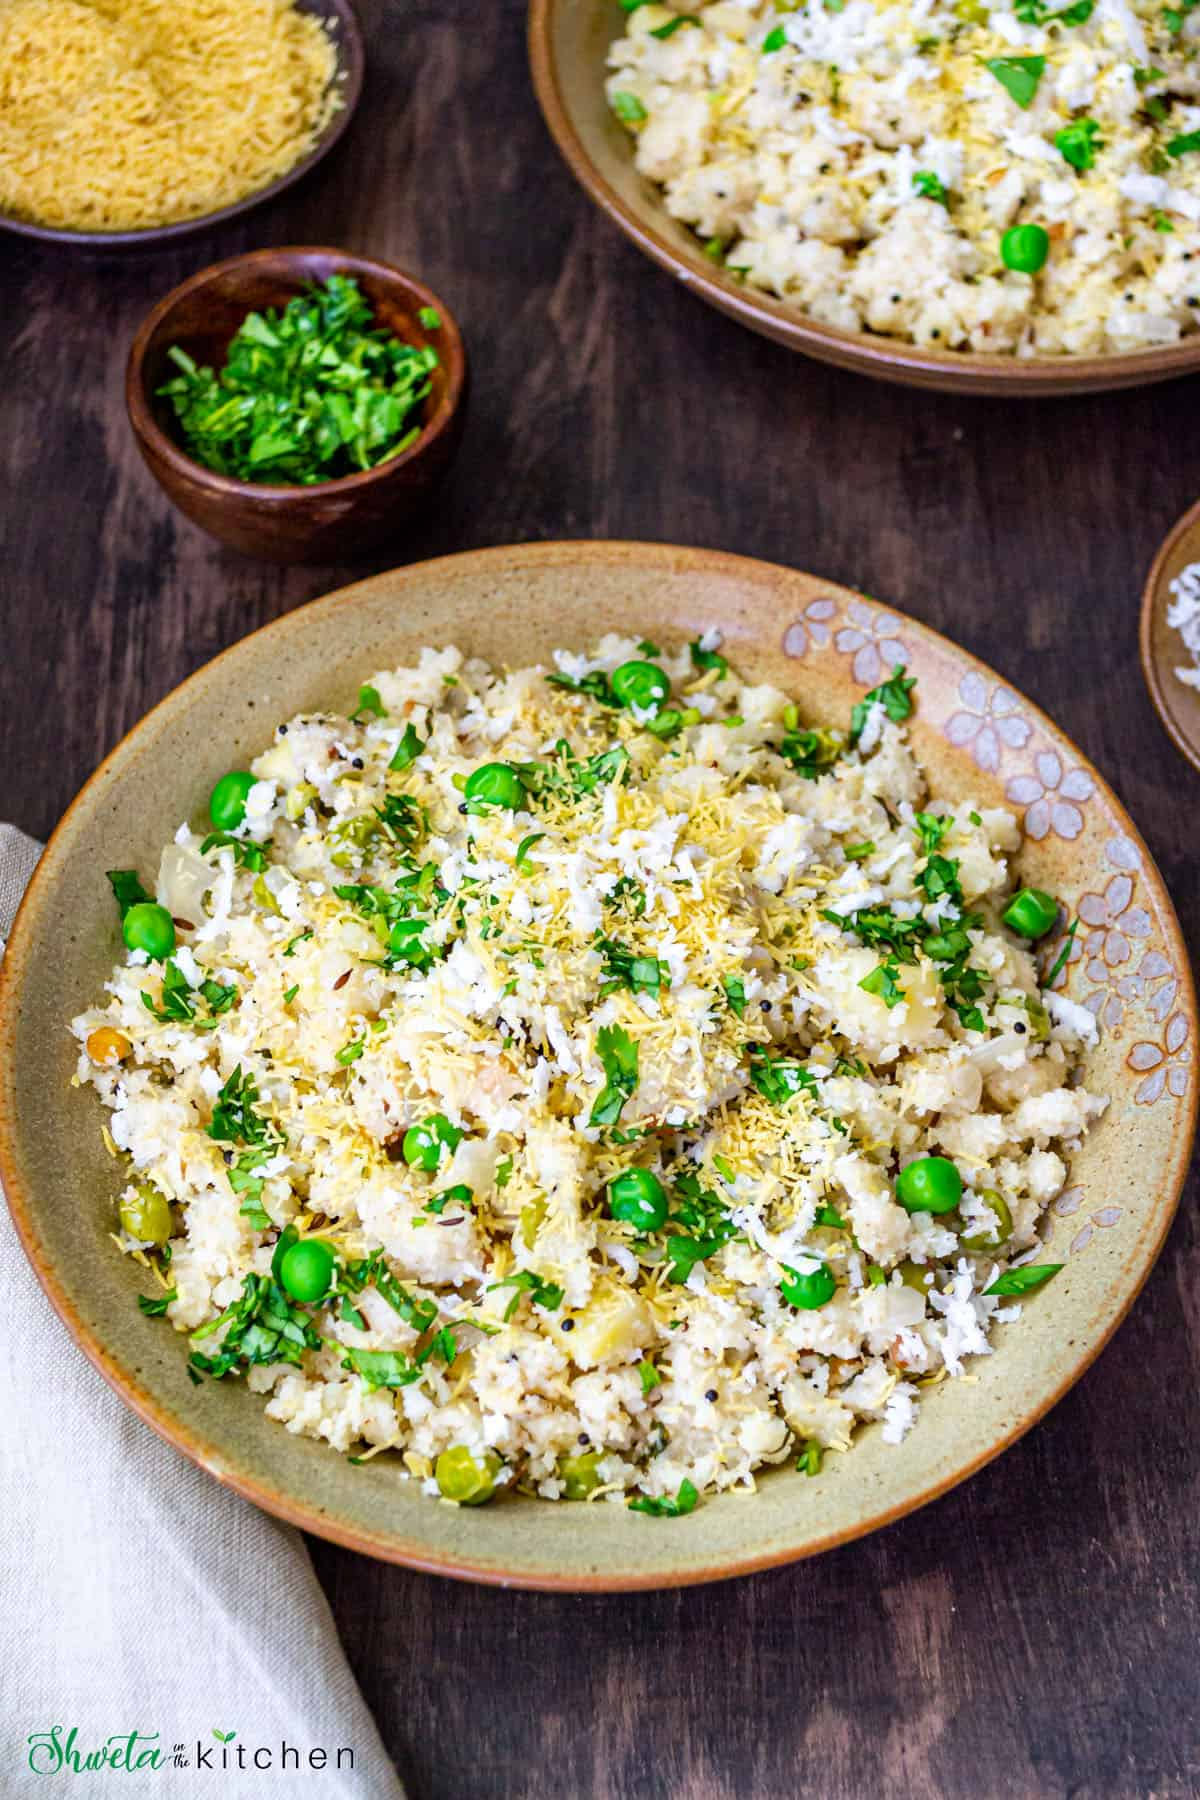 Rava upma served in a large bowl next to a small bowl of fresh cilantro.